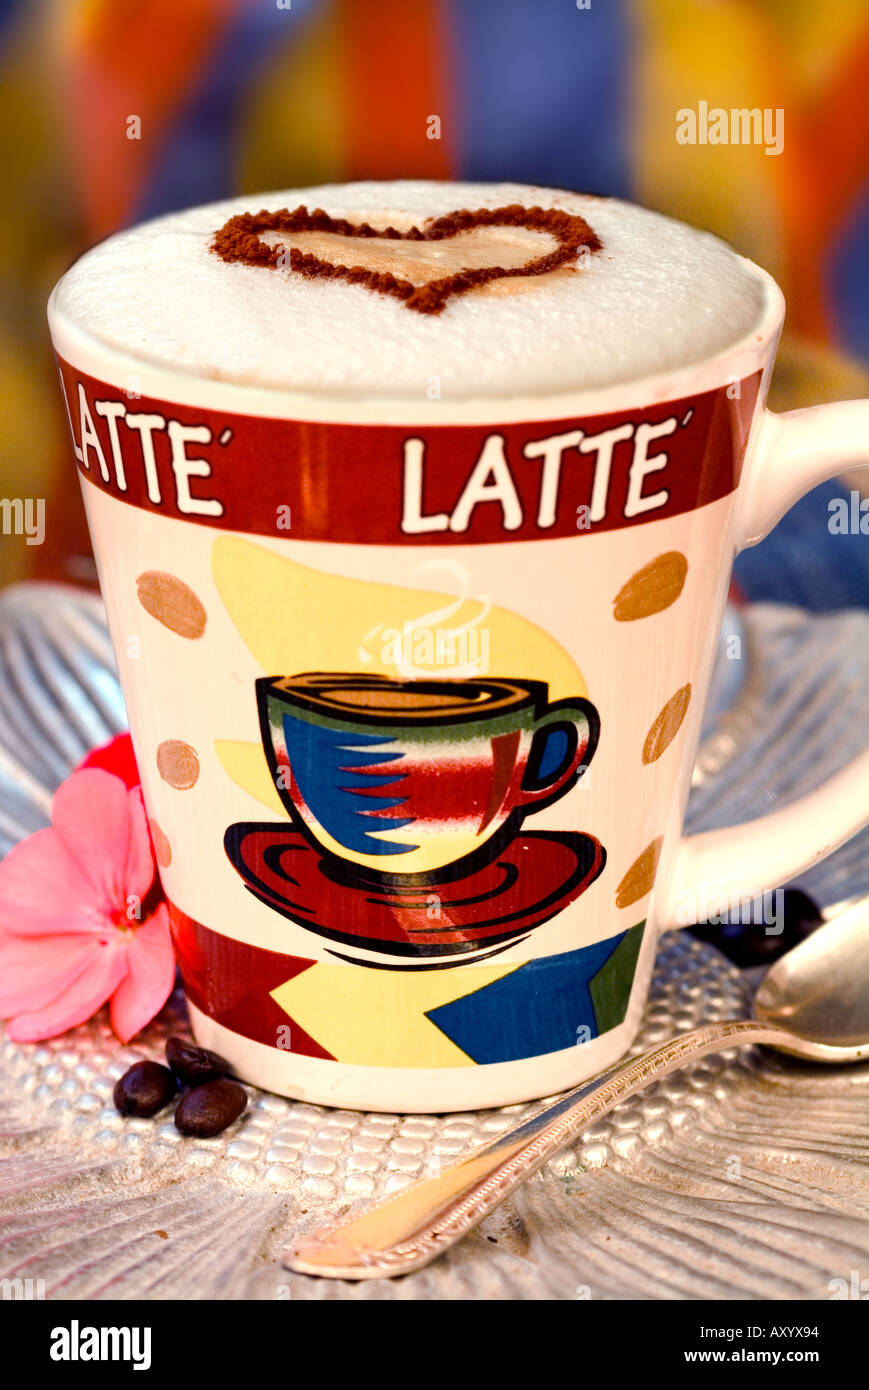 eb15fb67a0f Latte with heart shape design made of cinnamon on top of froth - Stock Image